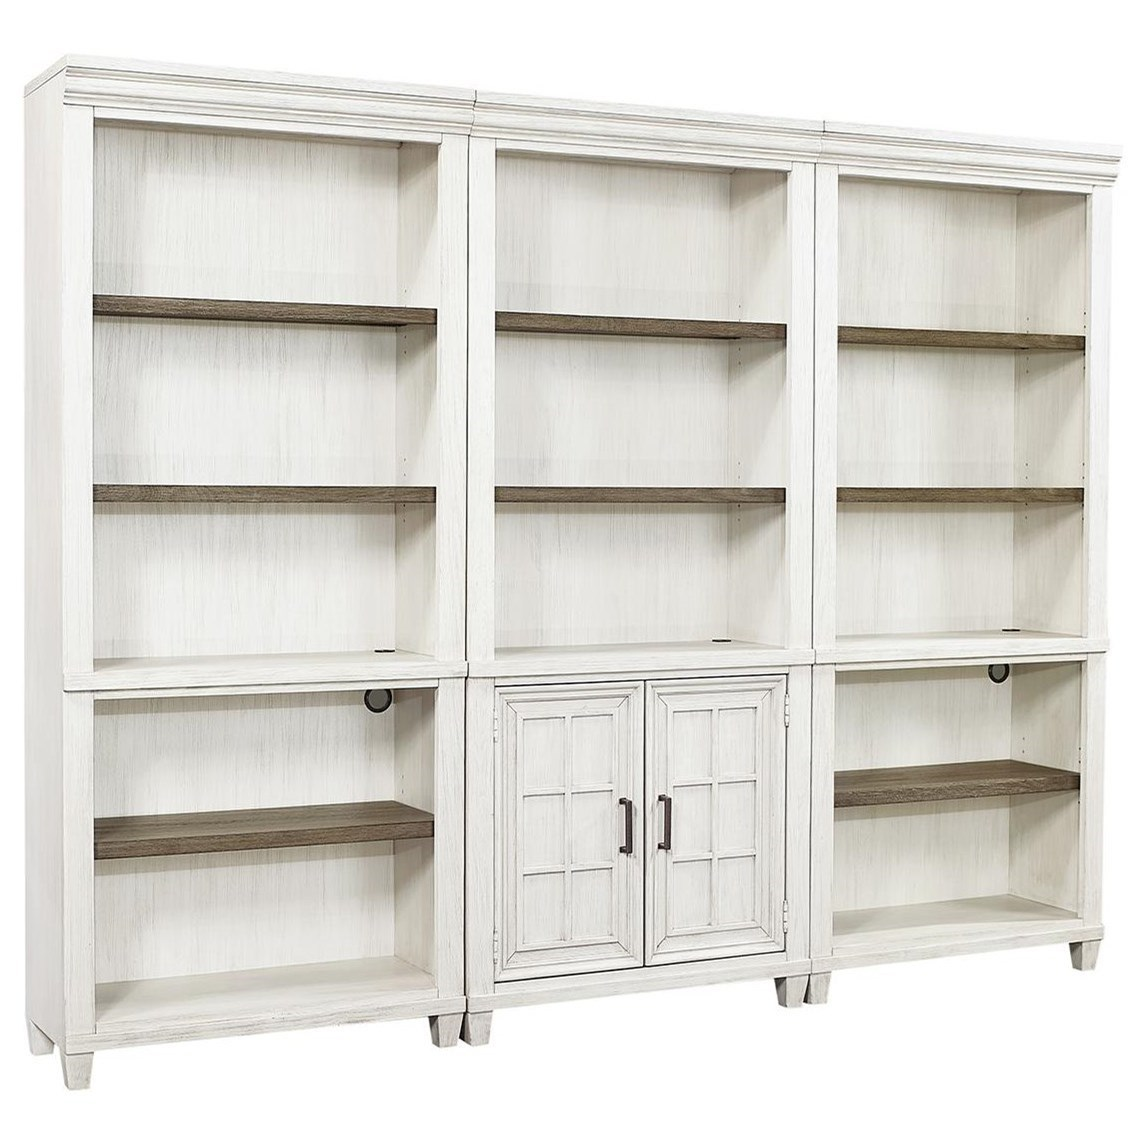 Caraway Bookcase Combination by Aspenhome at Stoney Creek Furniture